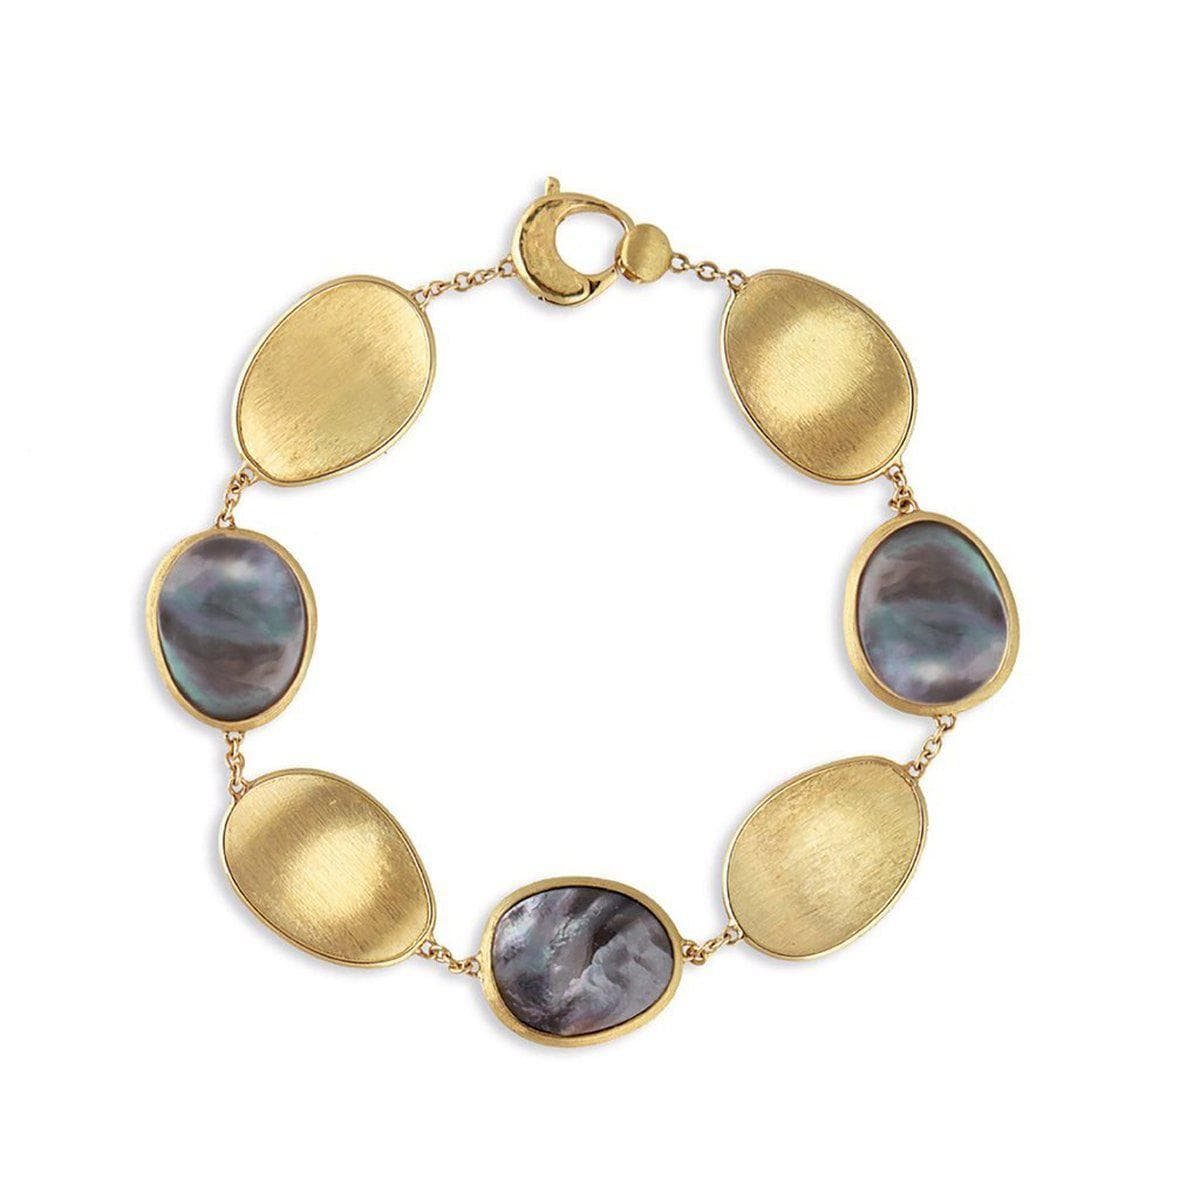 18K Lunaria Black Mother of Pearl Bracelet - BB2099 MPB Y-Marco Bicego-Renee Taylor Gallery